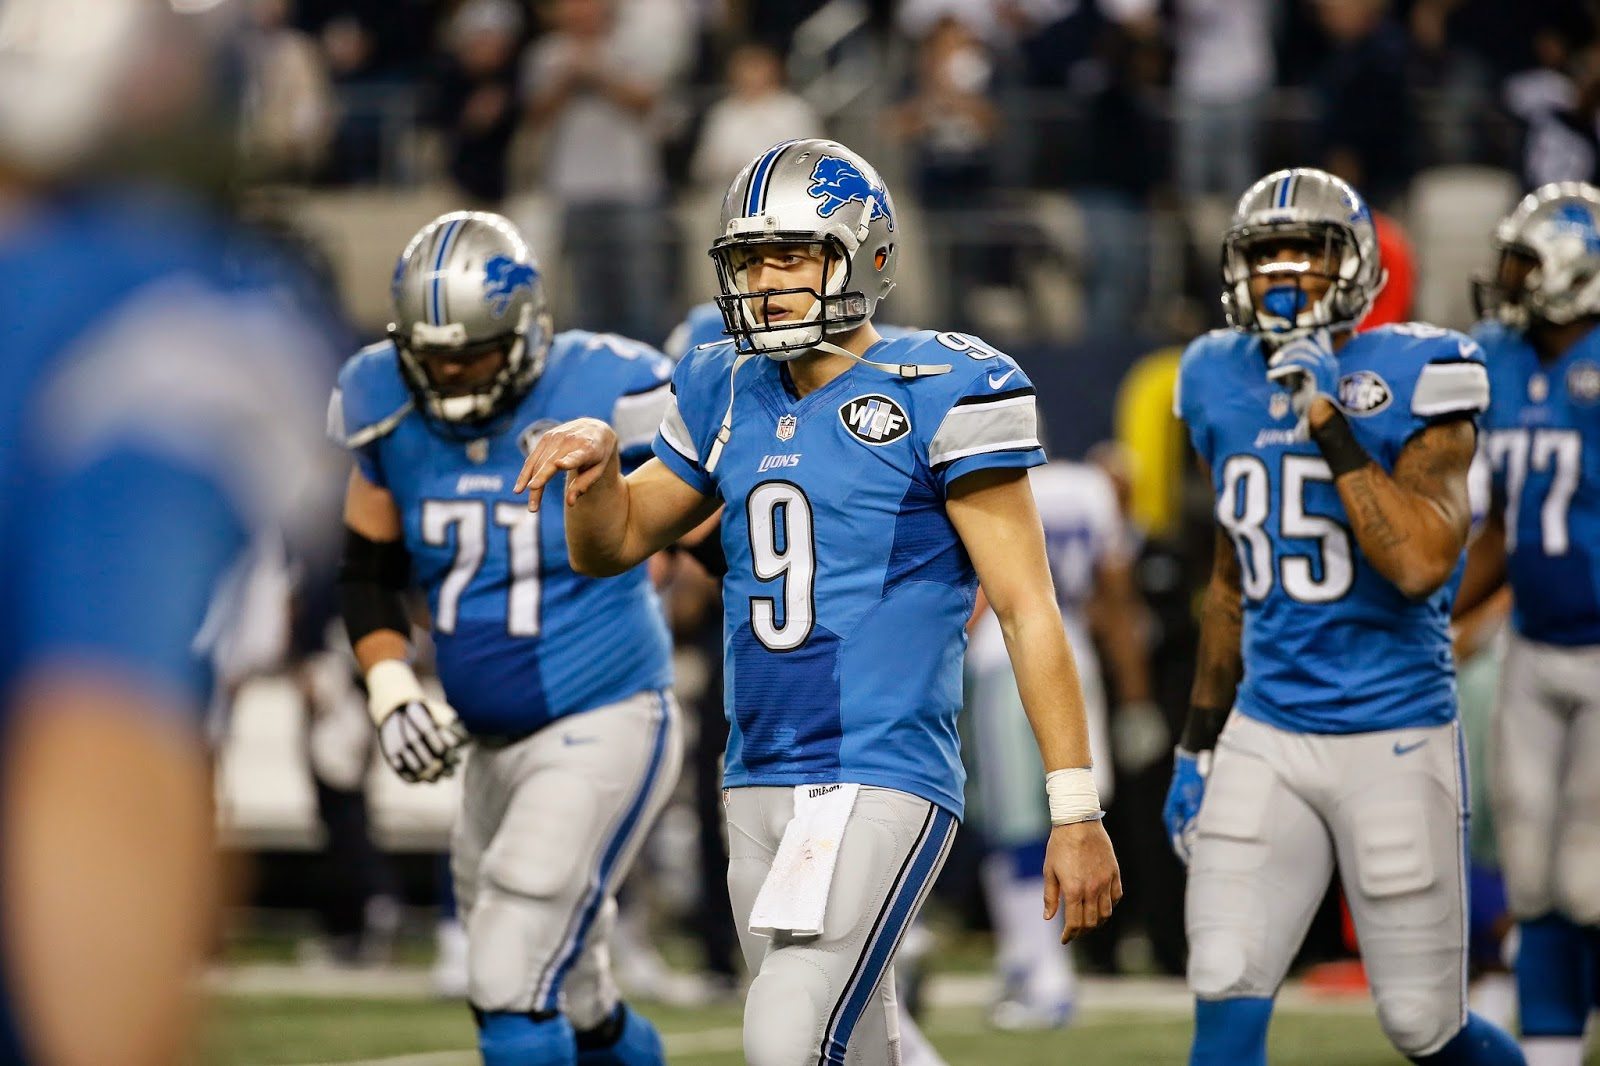 Join chat on Detroit Lions at 3 p.m. Thursday